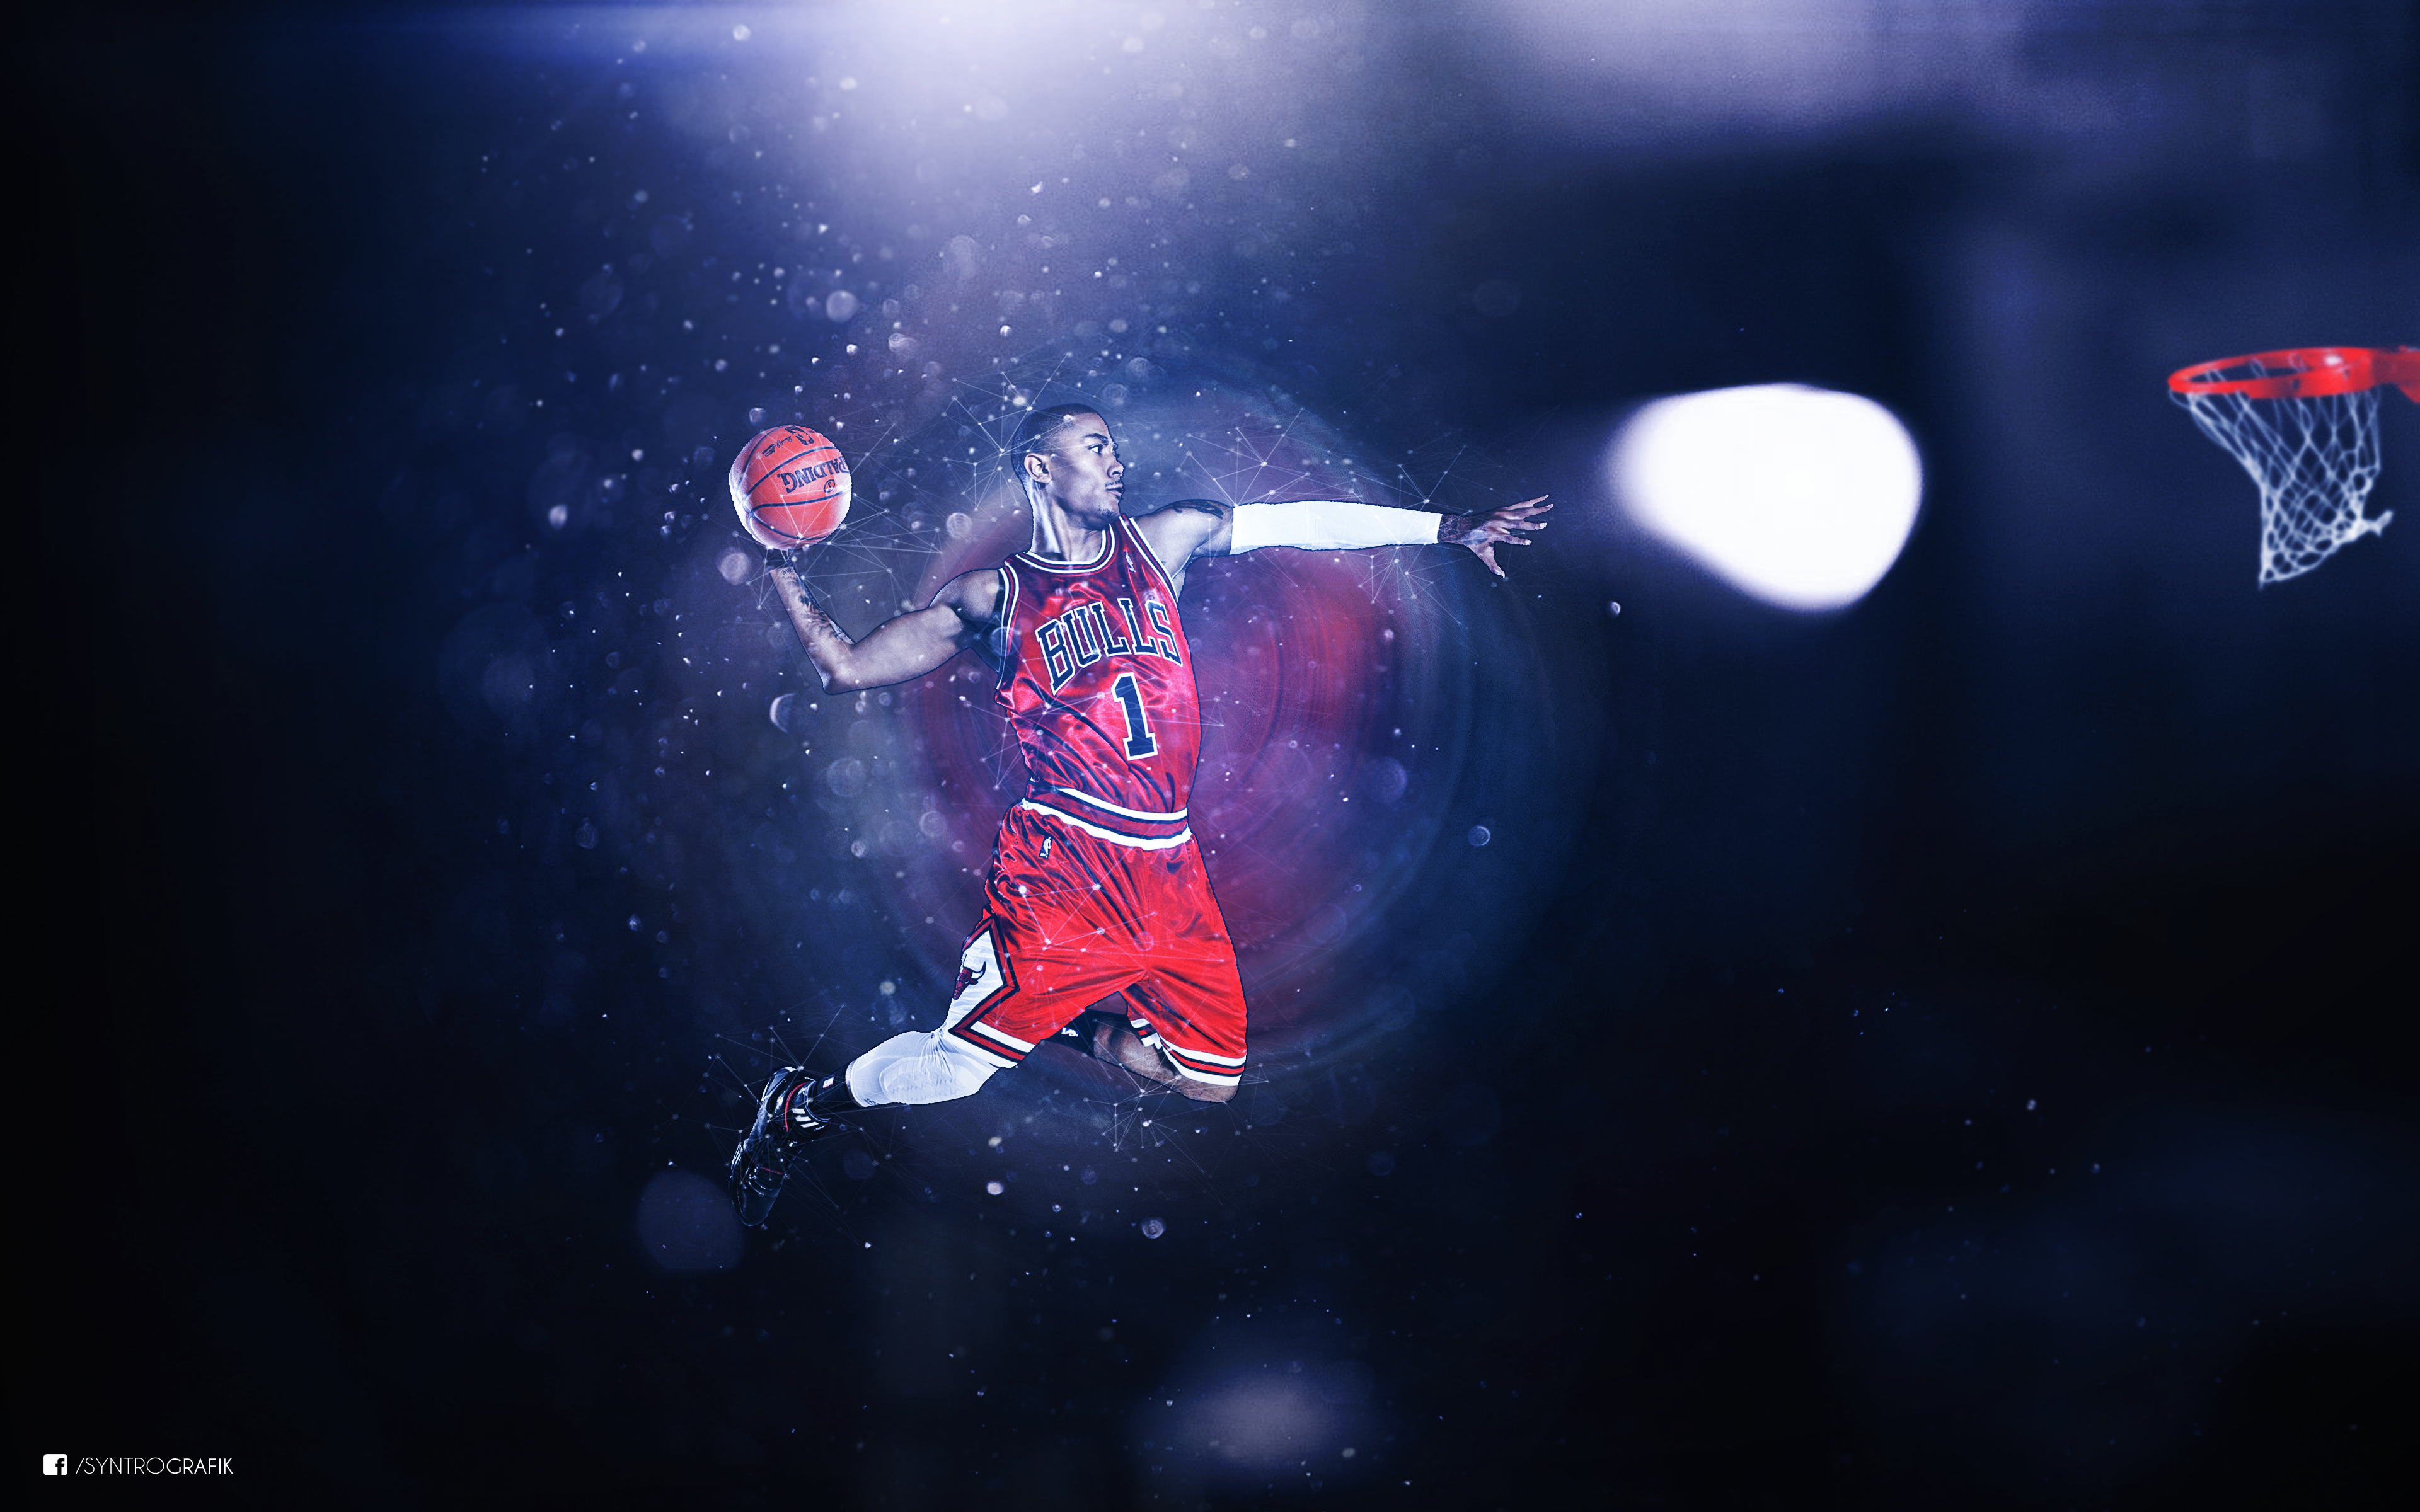 Derrick Rose Basketball Wallpaper by syntrografik 3840x2400